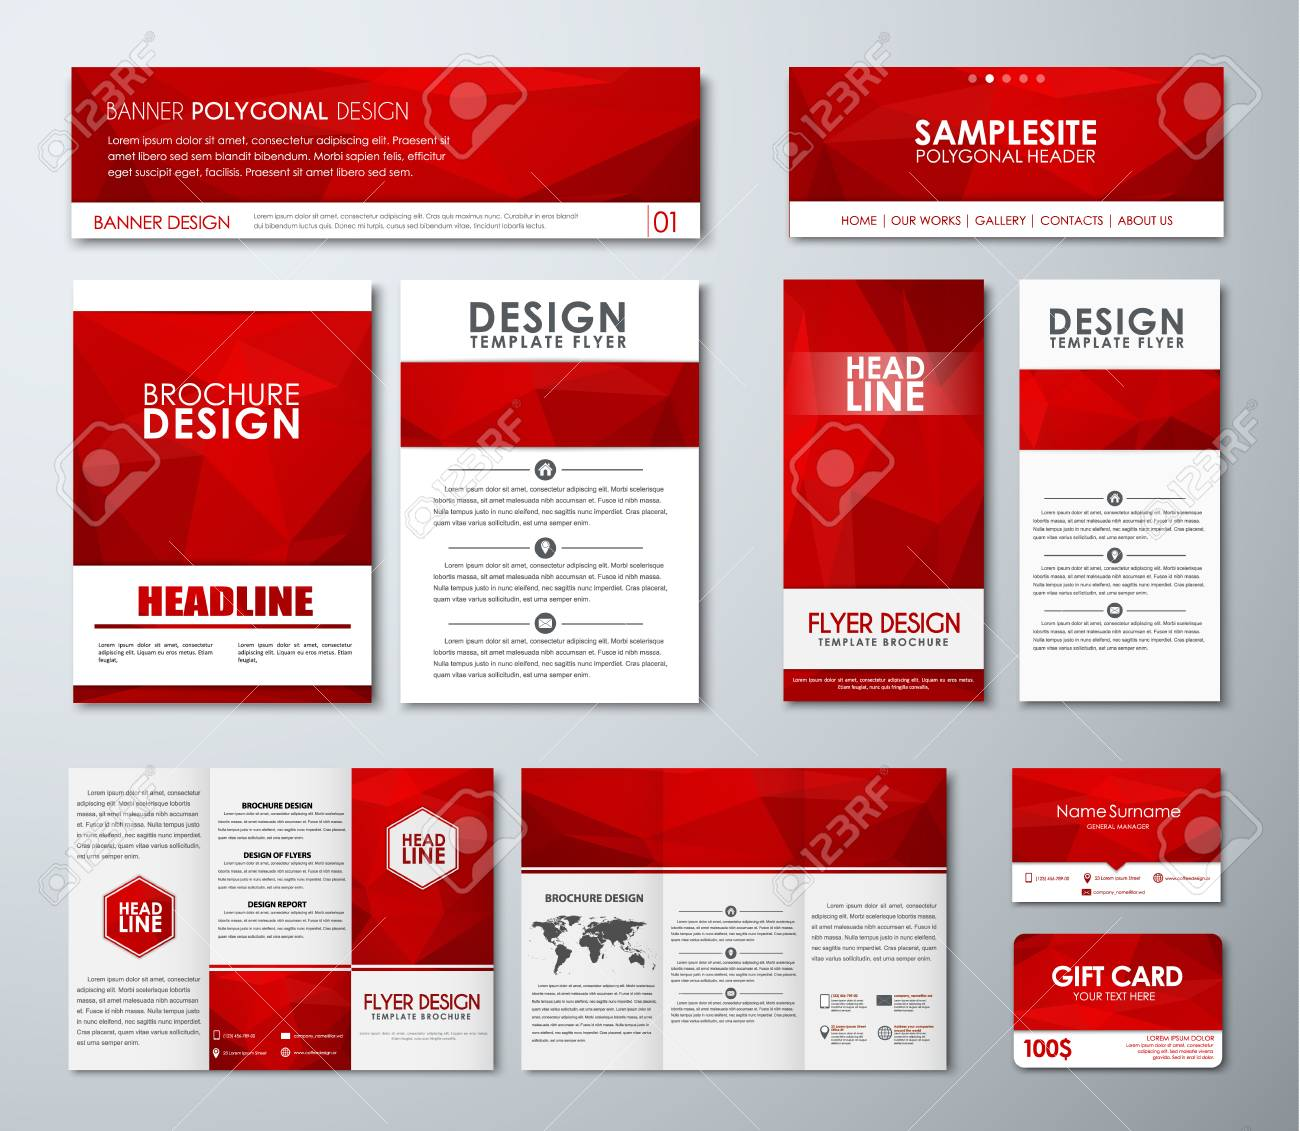 Design Polygonal Banners, Flyers, Brochures, Gift Cards, Folding ...